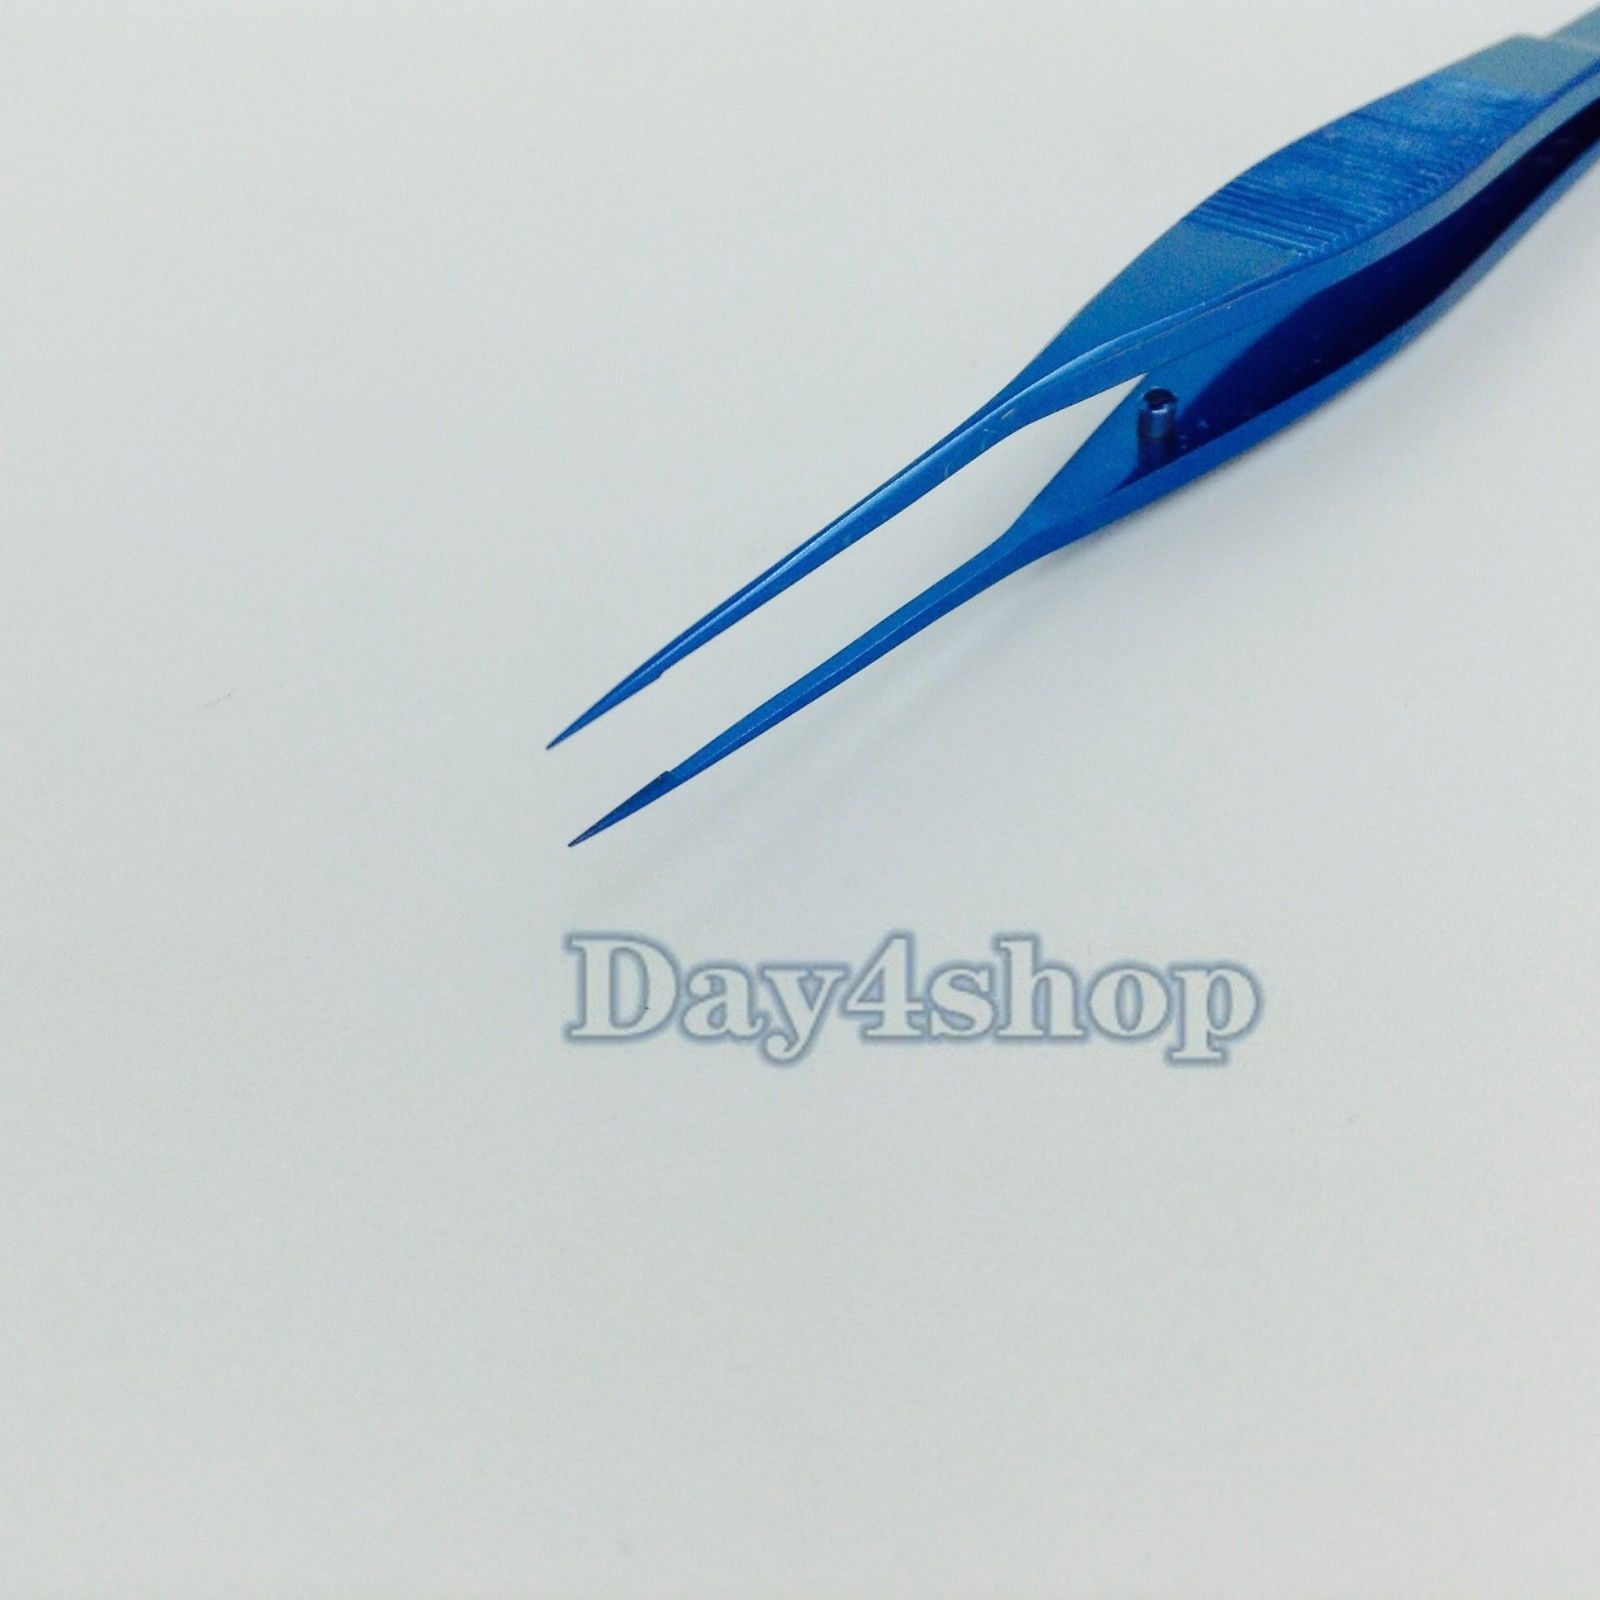 New Straight Tying Forcep 102mm Standard tip ophthalmic surgical instrumentNew Straight Tying Forcep 102mm Standard tip ophthalmic surgical instrument